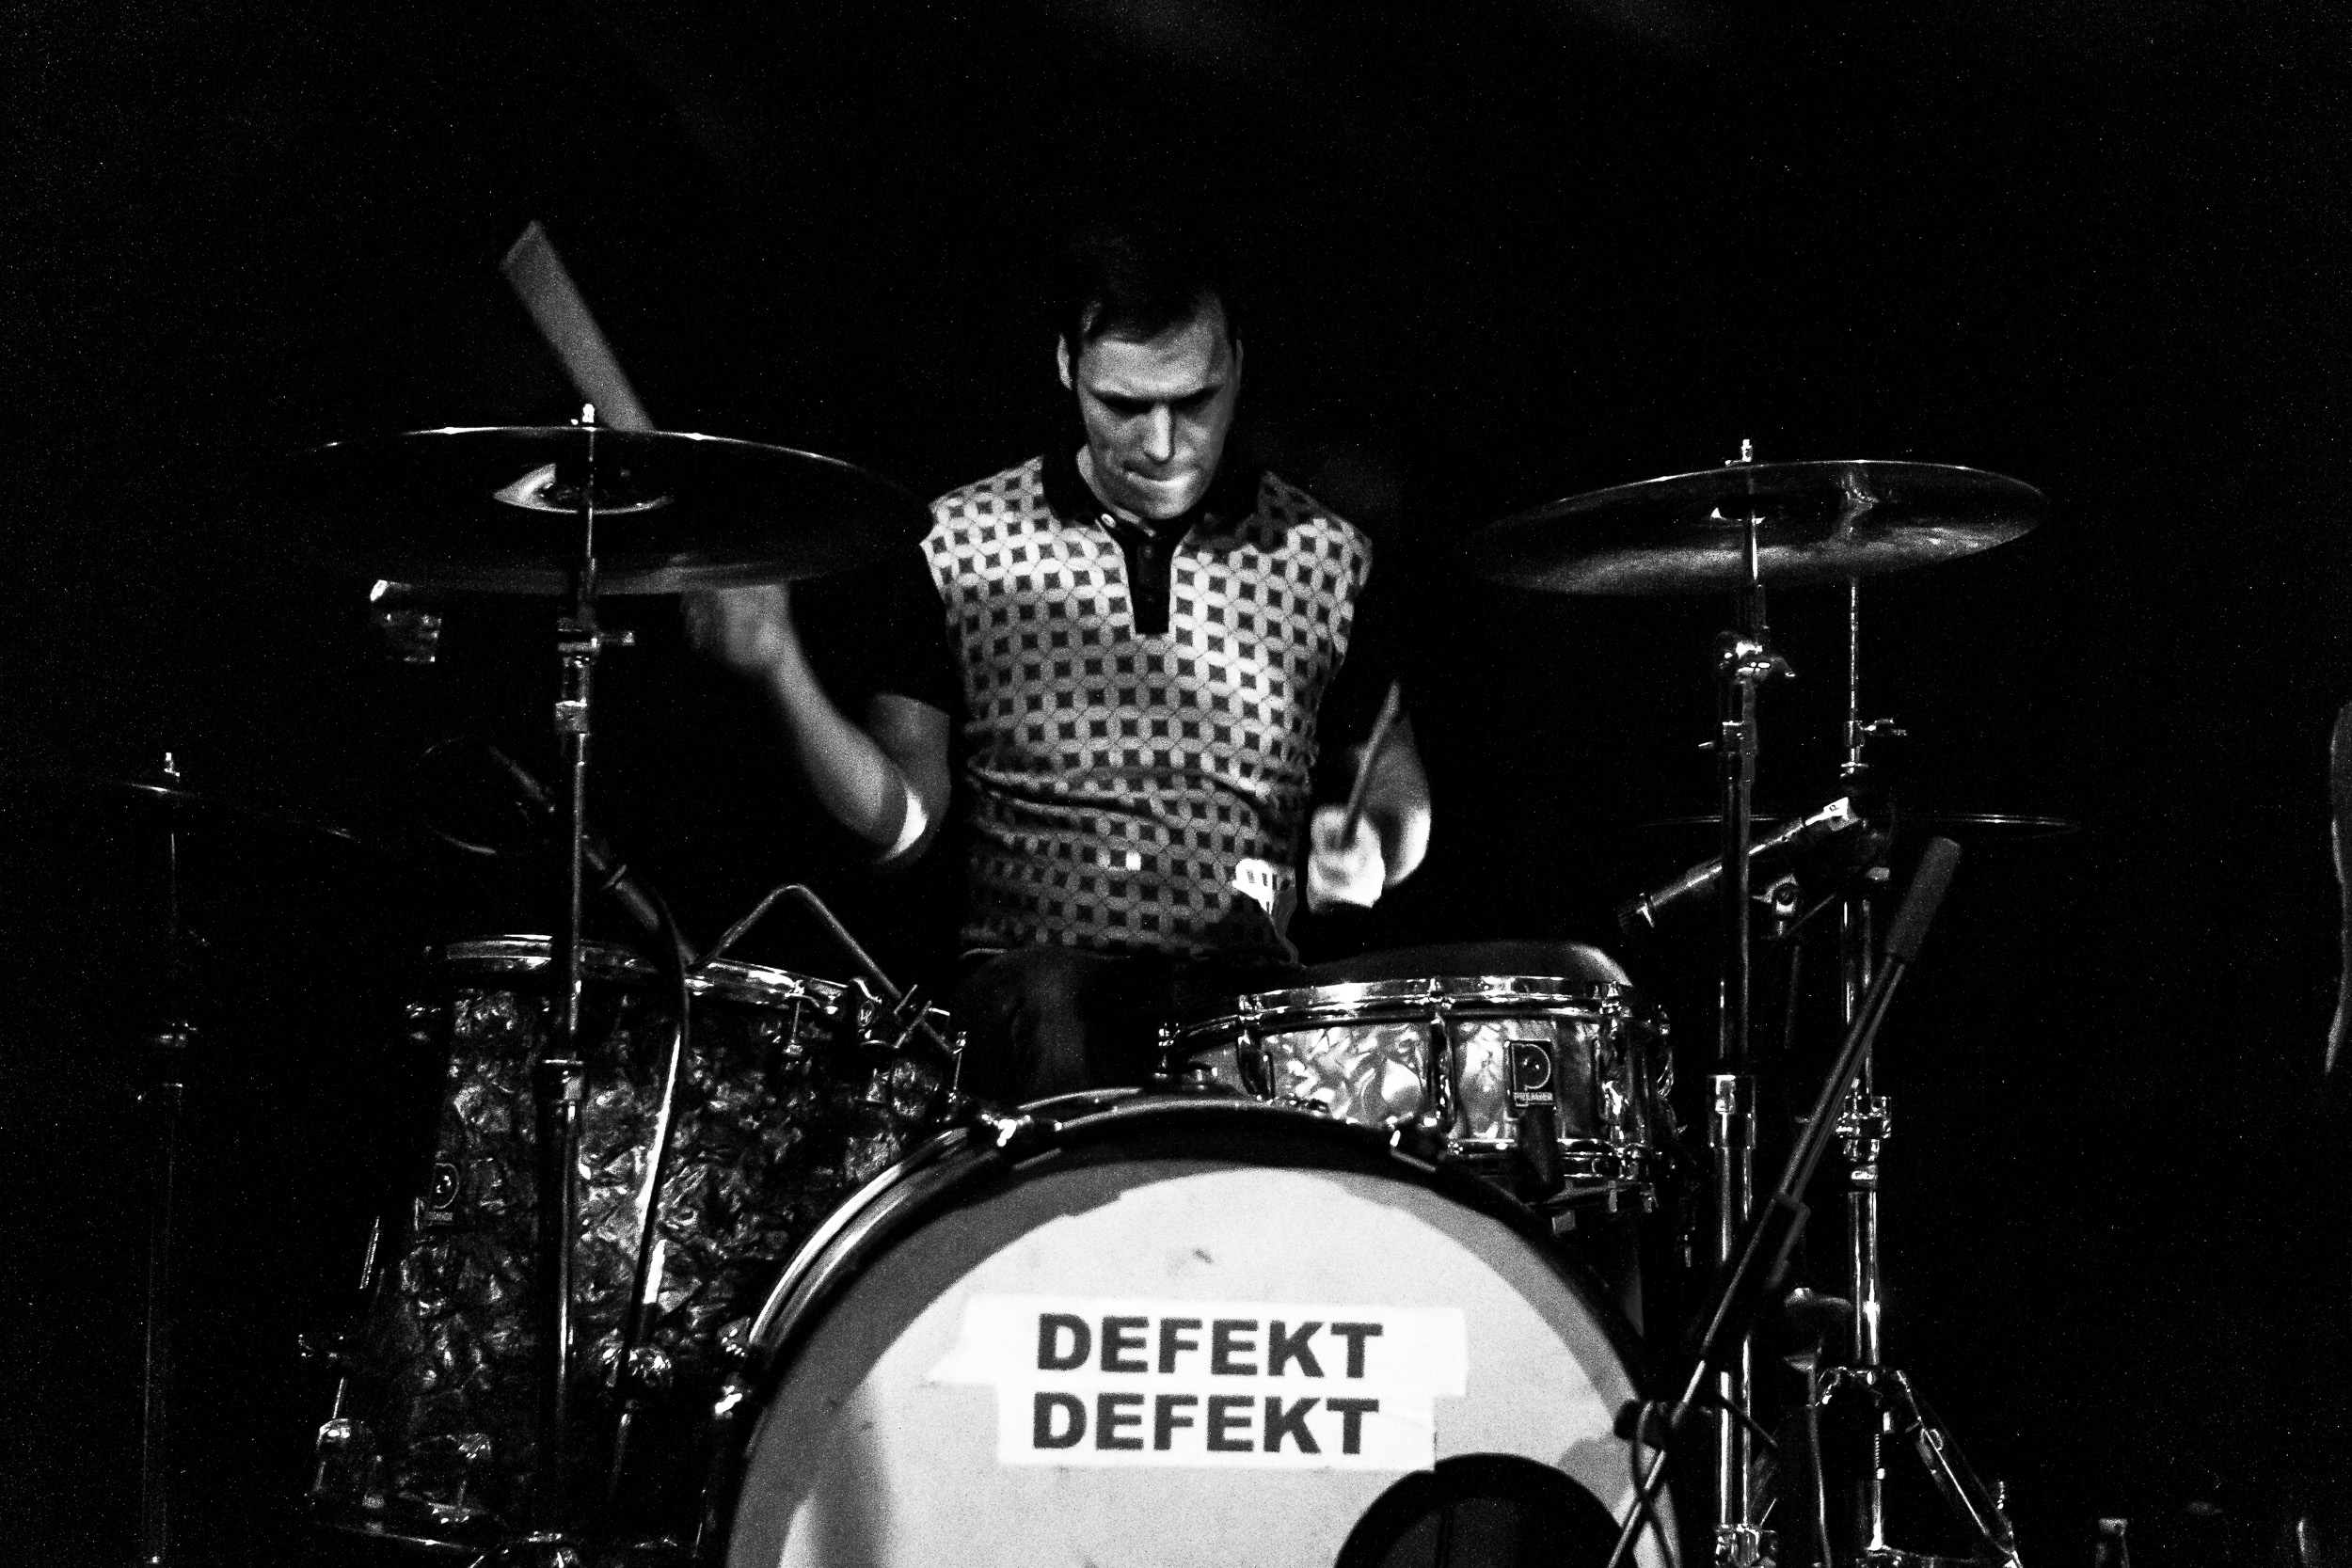 Johnny Notebook & the Dark Ages + Defekt Defekt